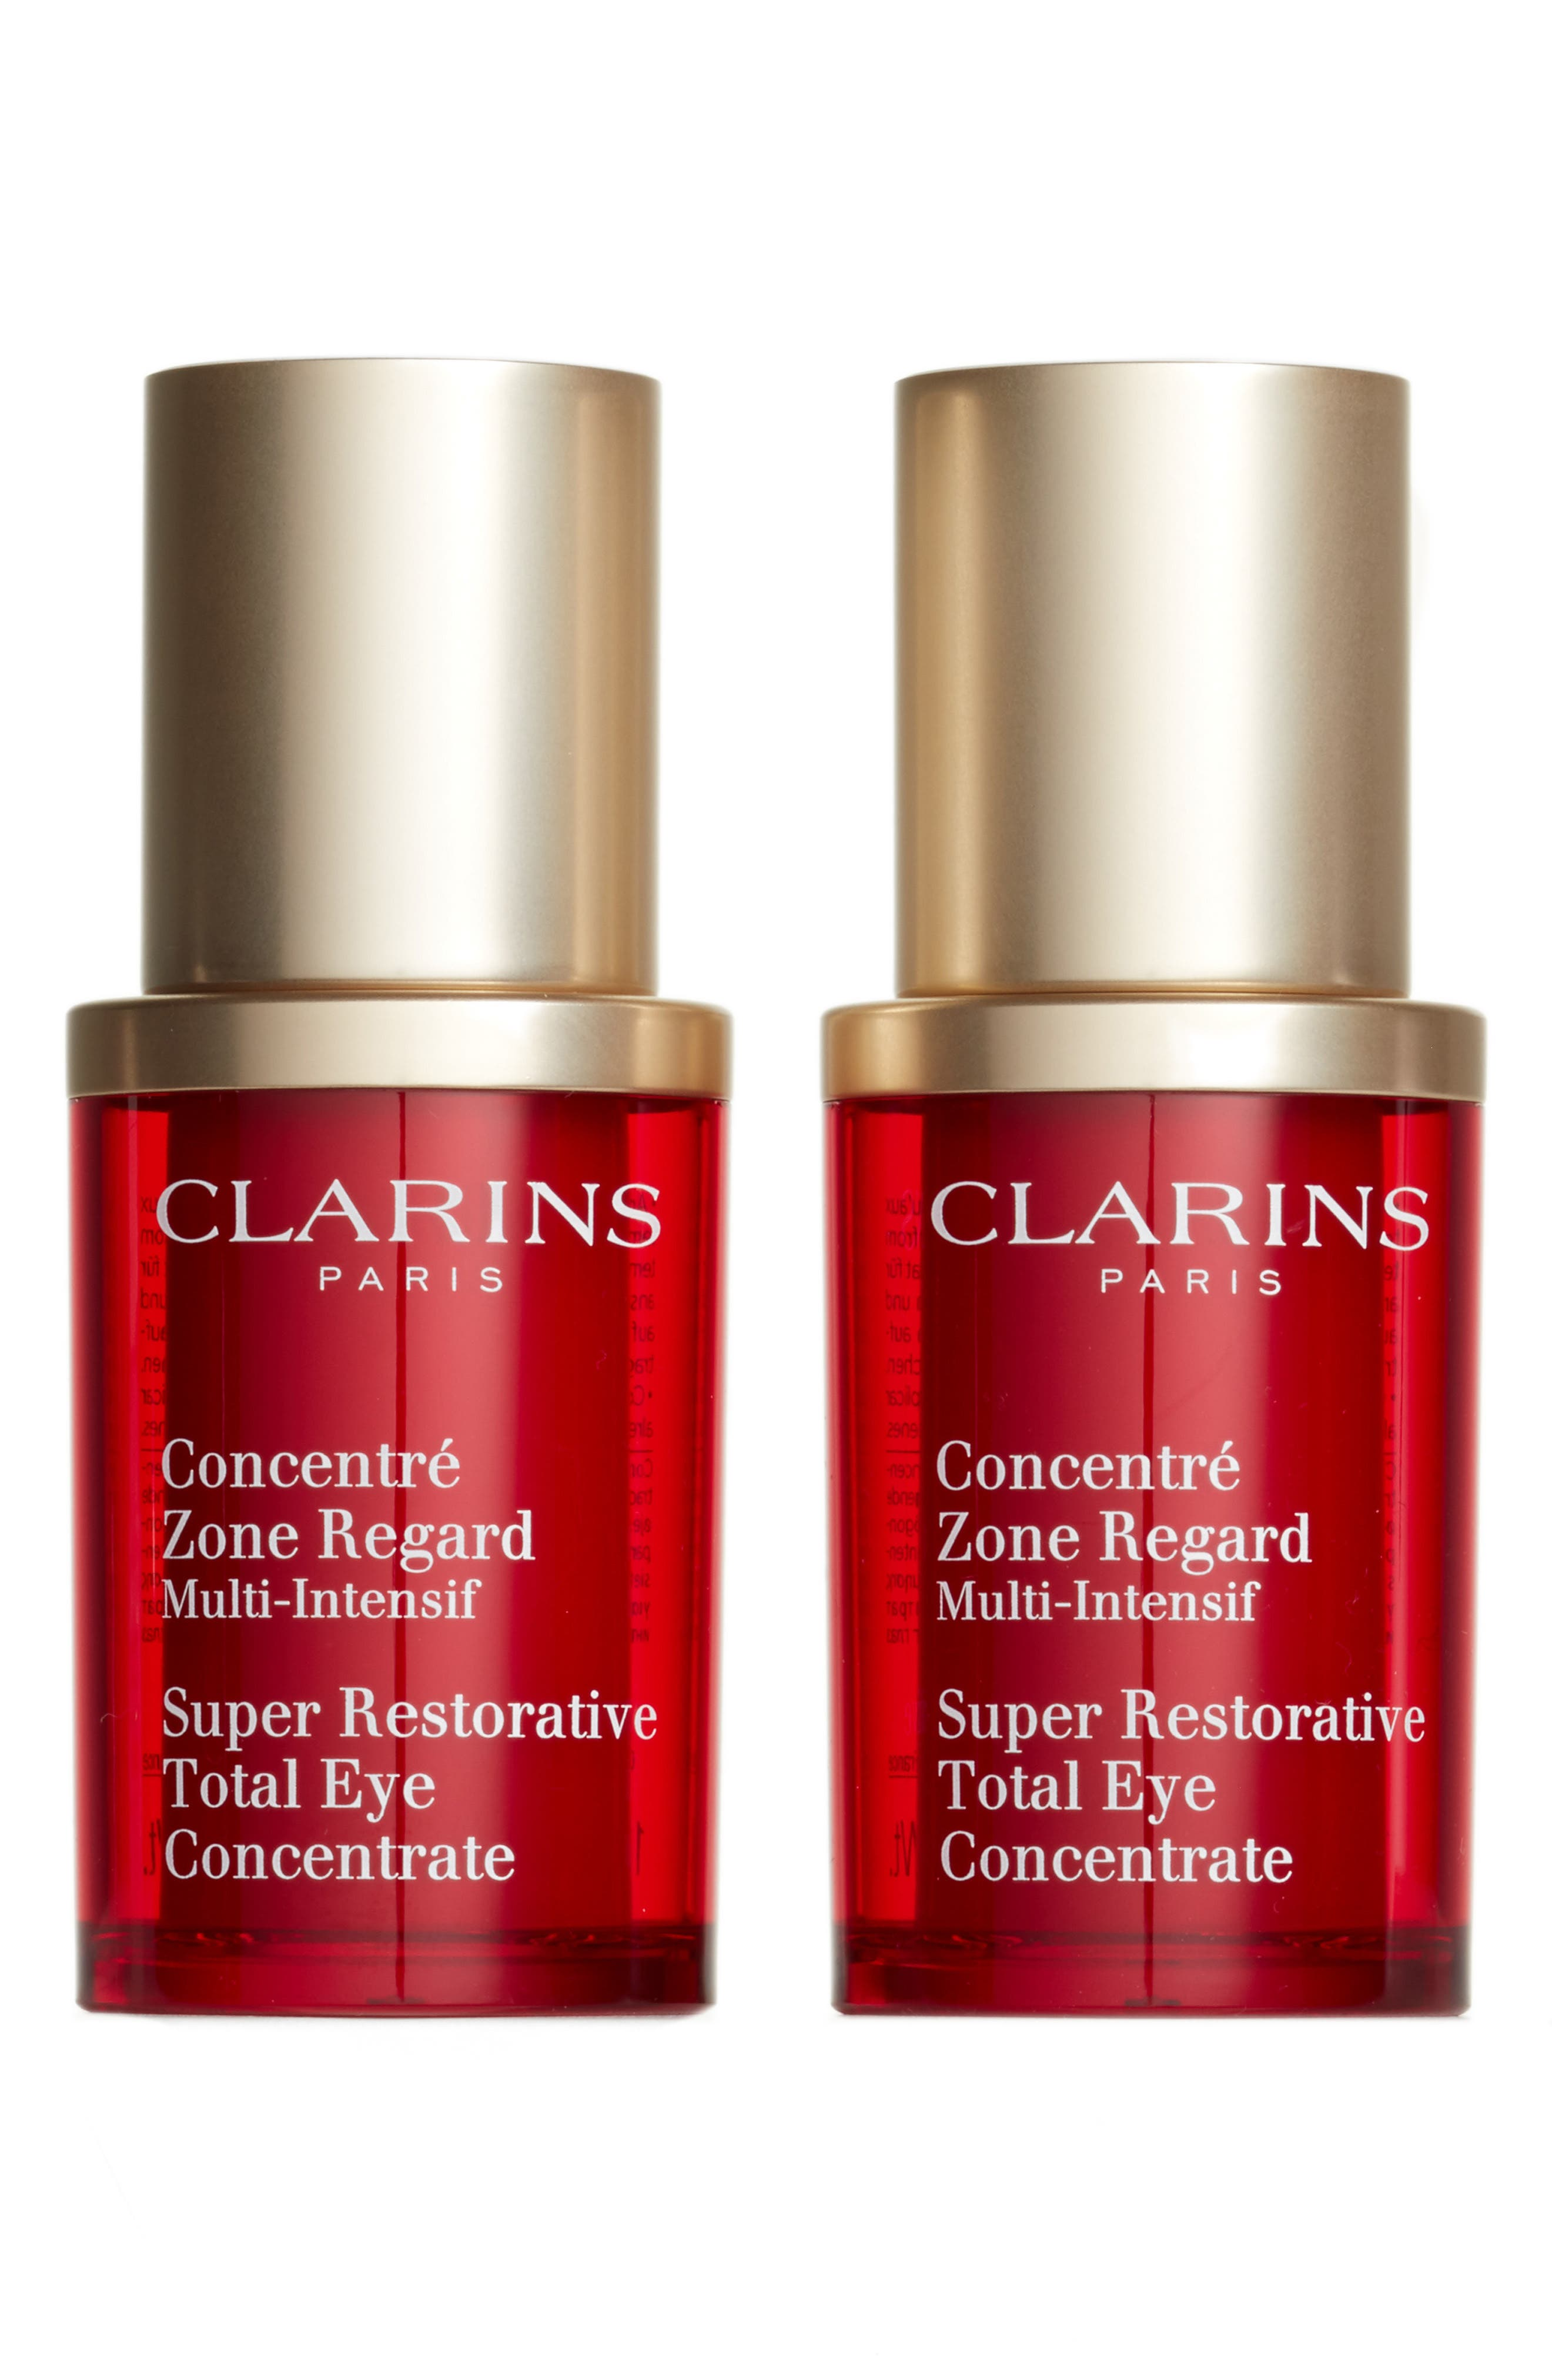 Clarins Super Restorative Total Eye Concentrate Duo ($170 Value)